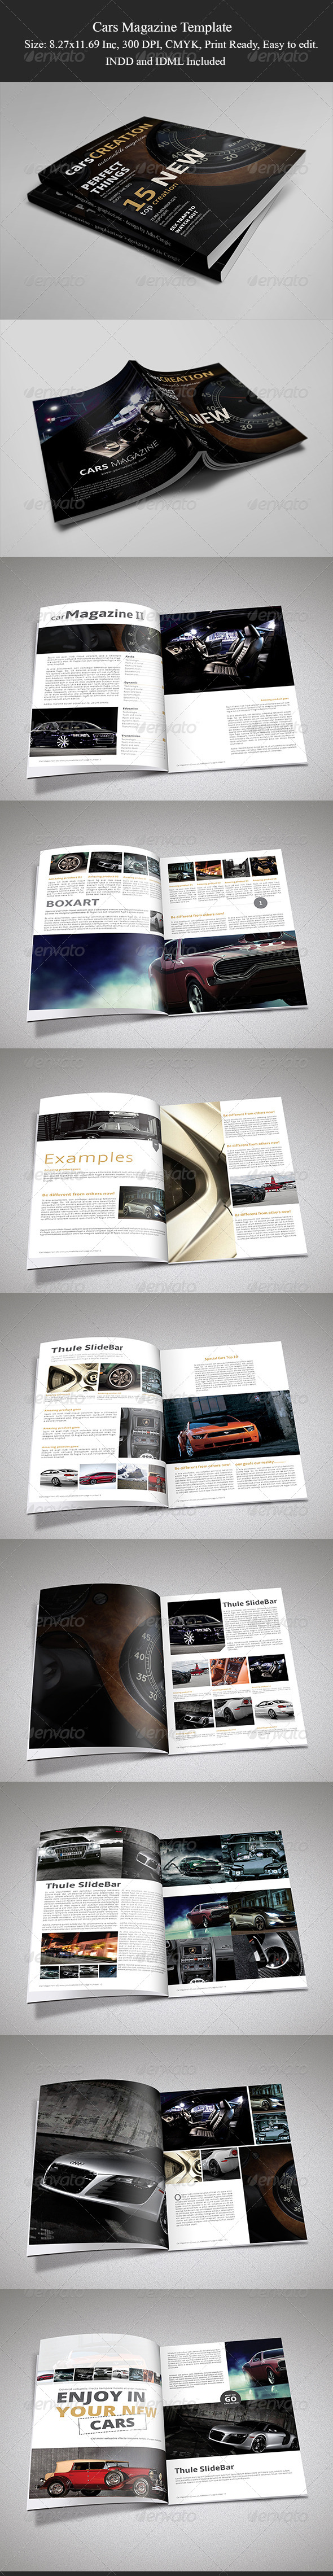 GraphicRiver Cars Magazine Template II 6193736